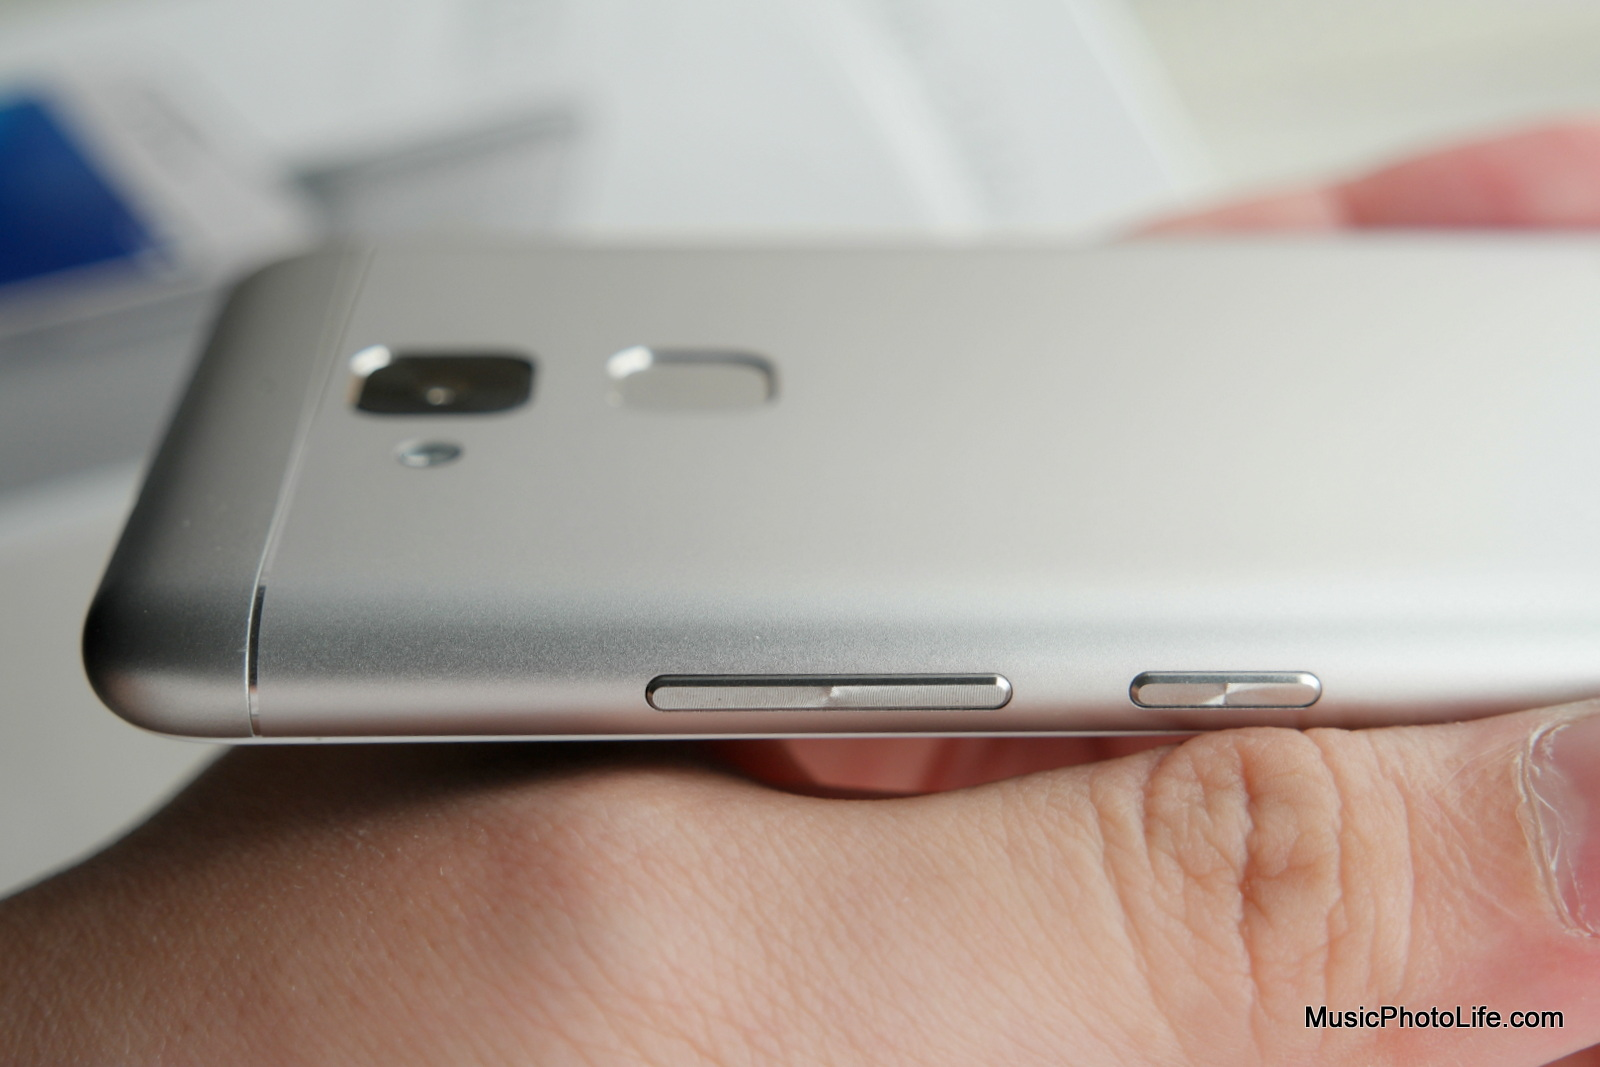 ASUS Zenfone 3 Max power and volume buttons - review by musicphotolife.com